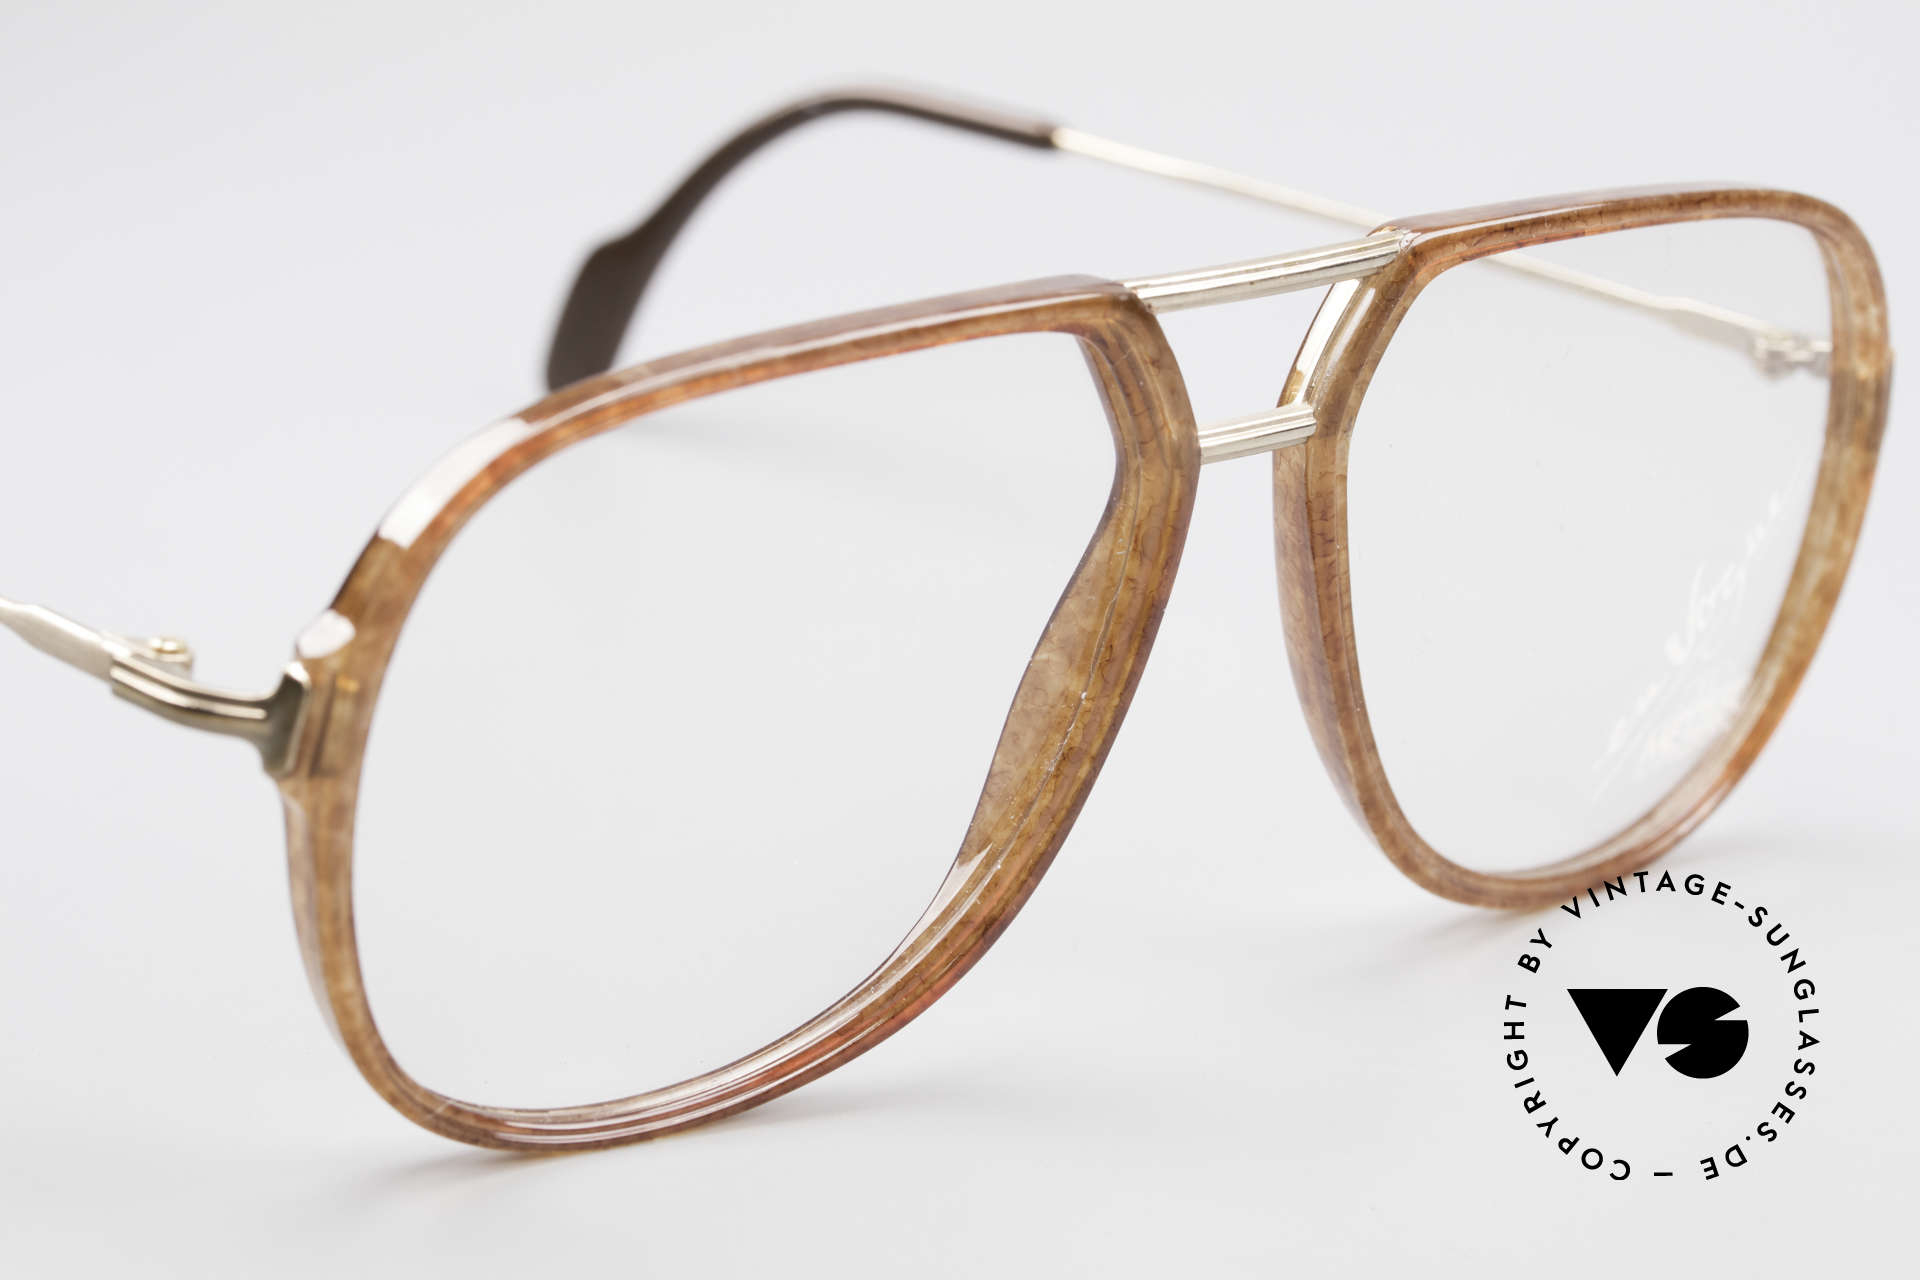 Metzler 0664 80's En Vogue Vintage Glasses, demo lenses can be replaced with lenses of any kind, Made for Men